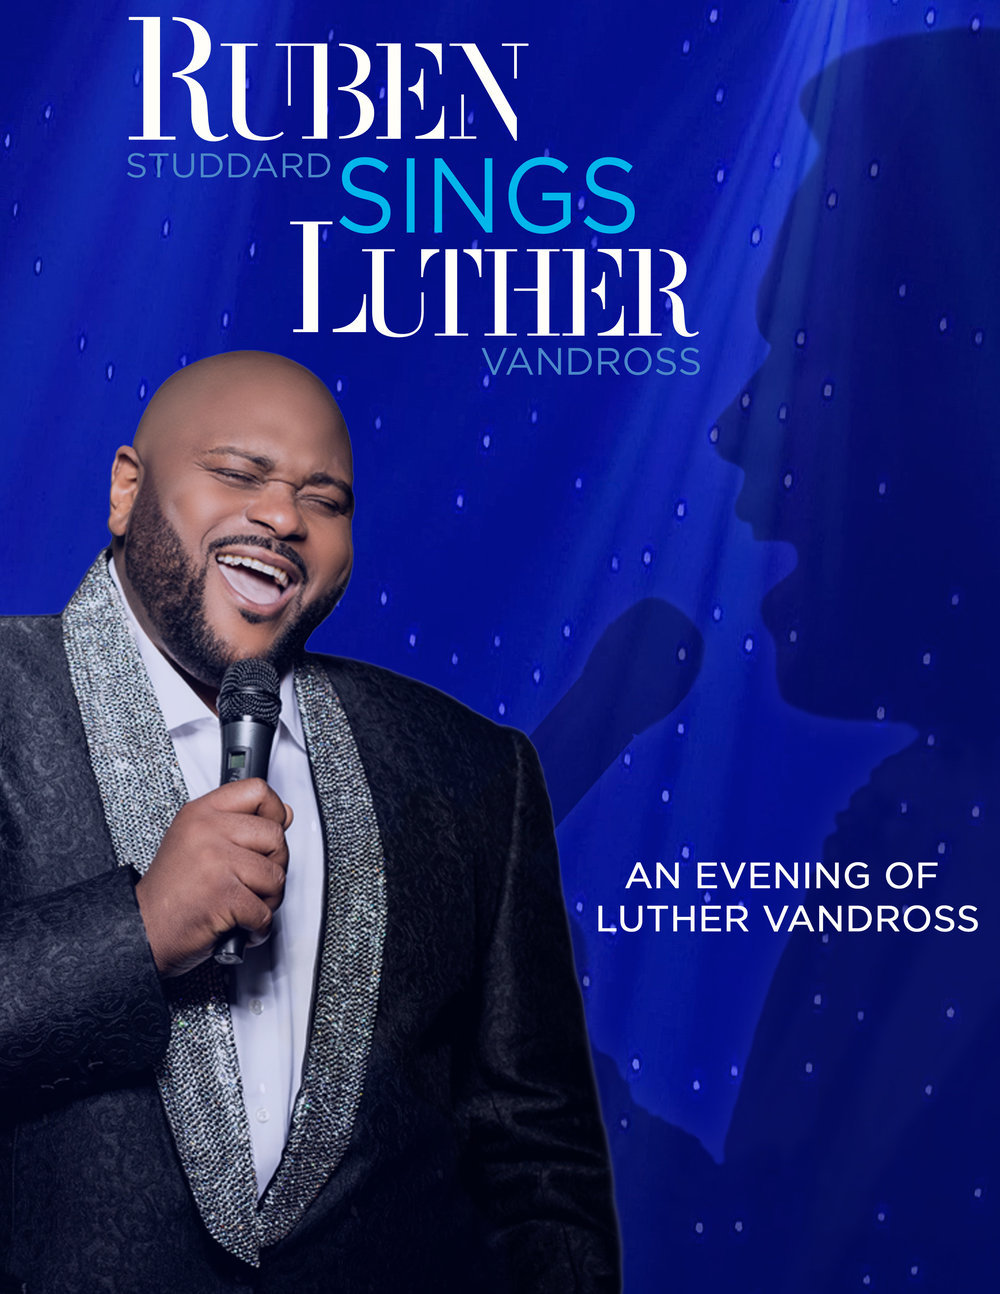 RUBEN SINGS LUTHER   An evening of LUTHER VANDROSS - starring RUBEN STUDDARD